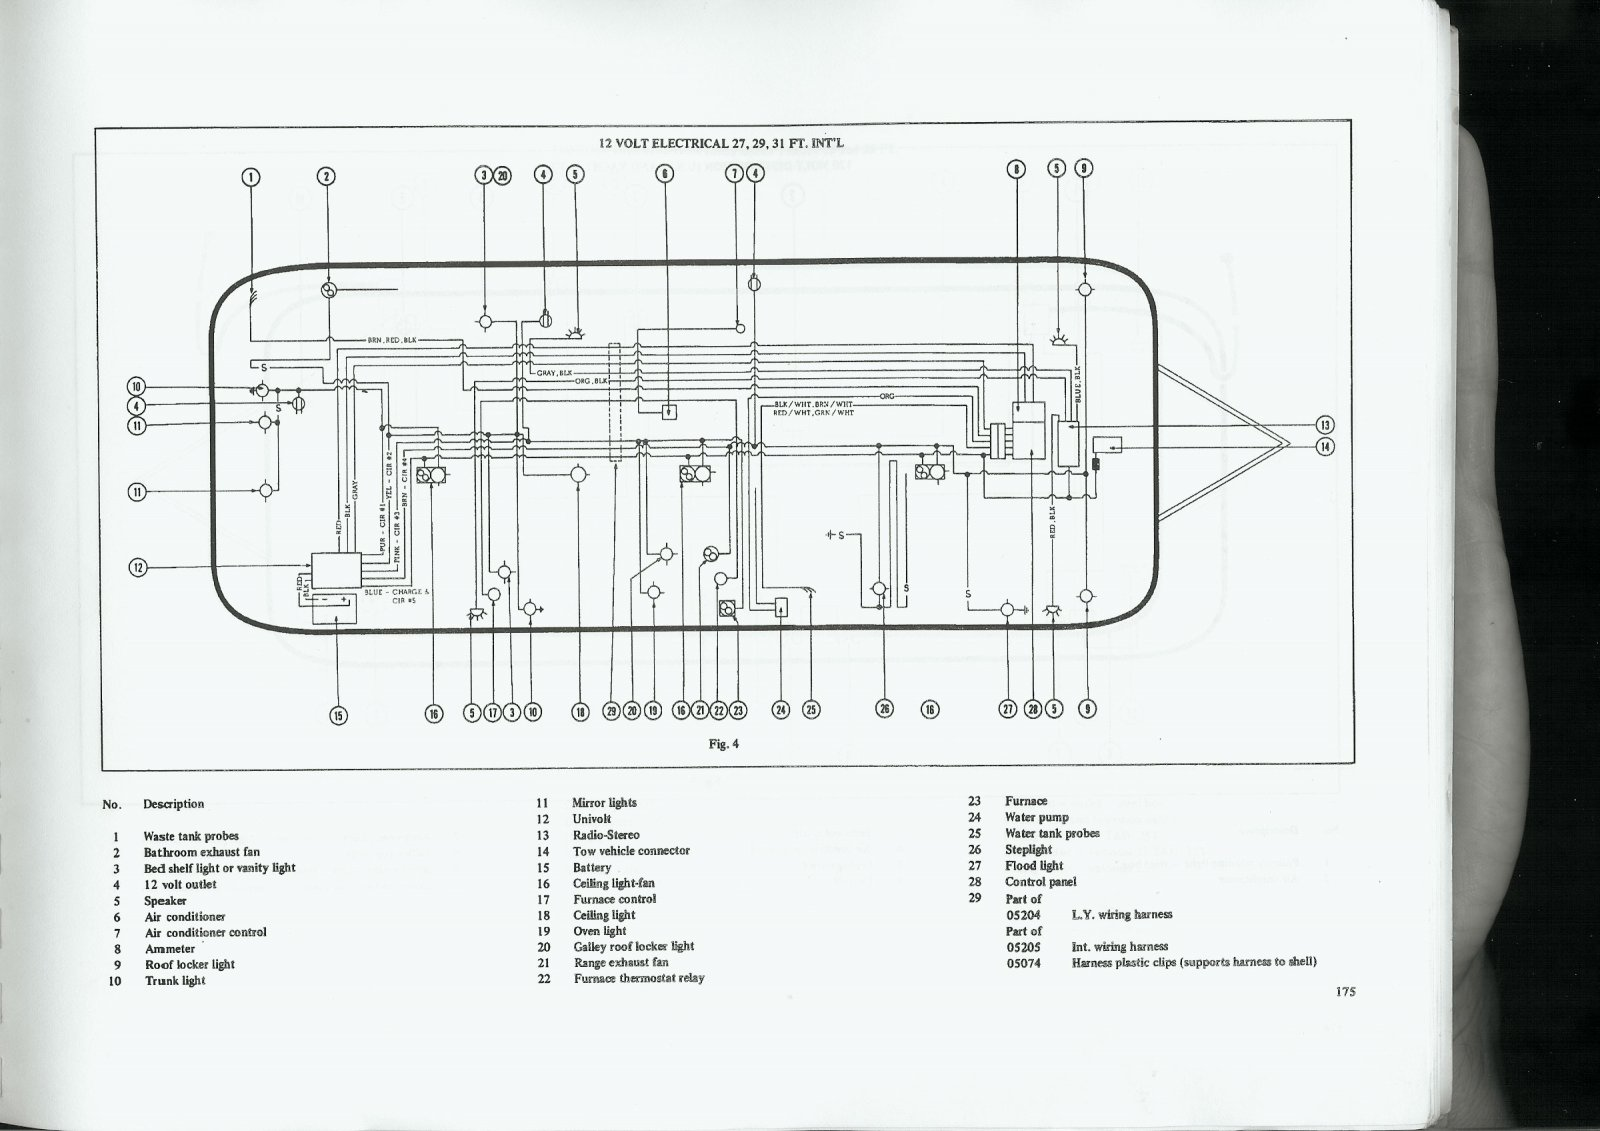 airstream camper wiring diagram airstream wiring diagram wiring diagram data  airstream wiring diagram wiring